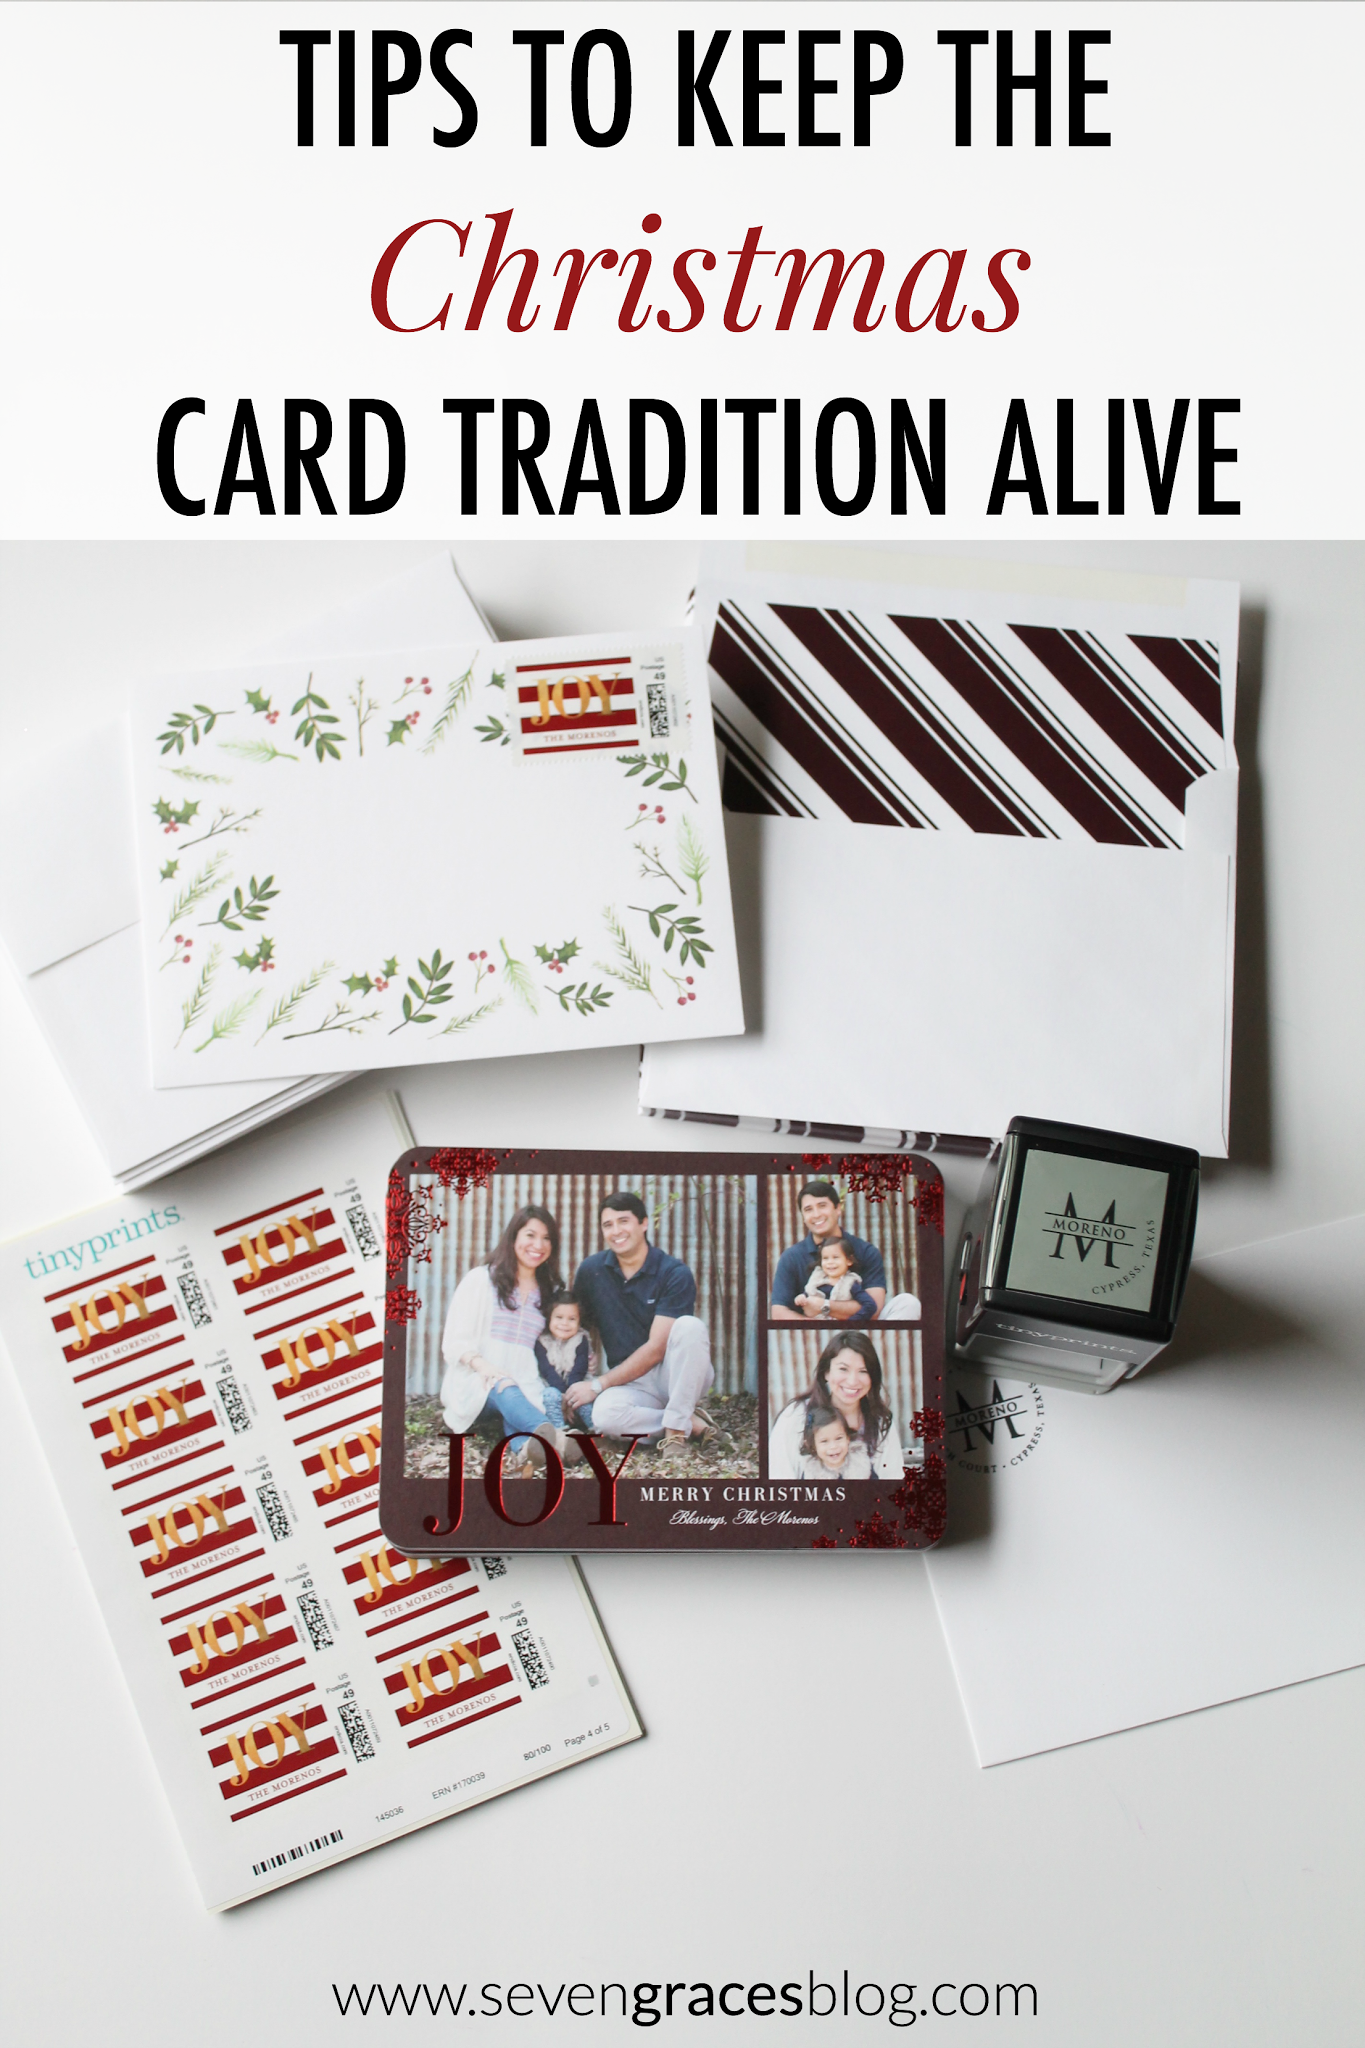 Tips to Keep the Christmas Card Tradition Alive: Our Christmas Card 2015